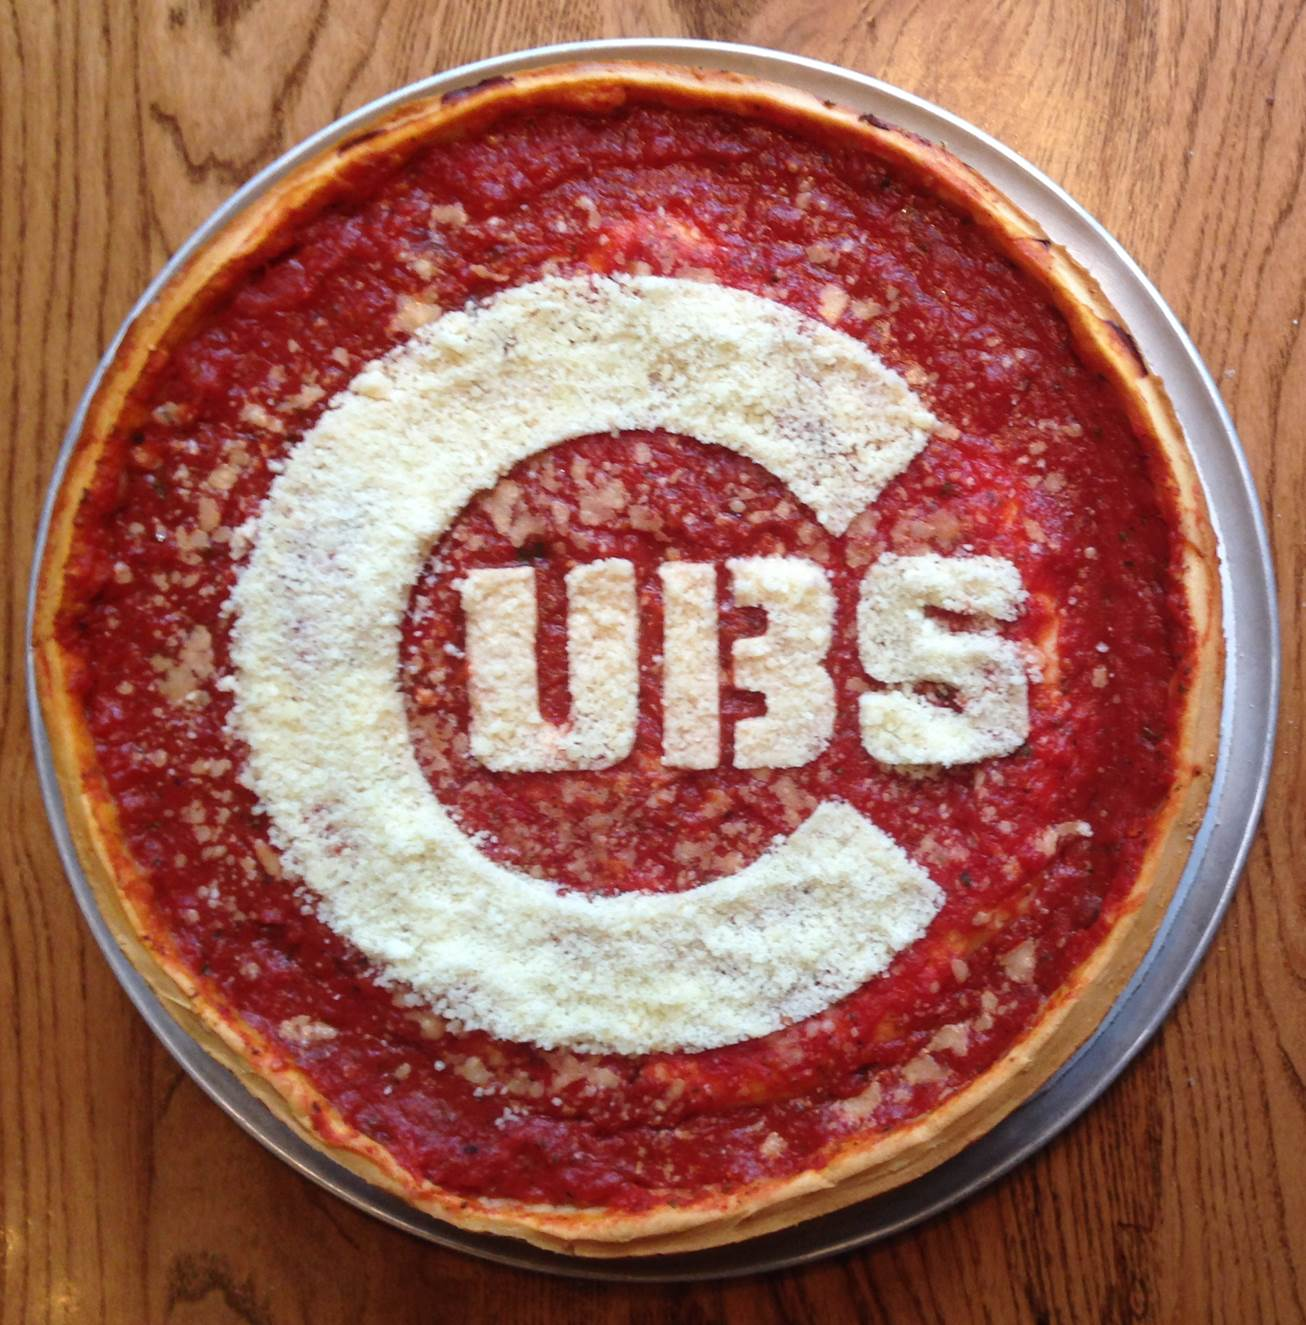 Giordano's Cubs Pizza